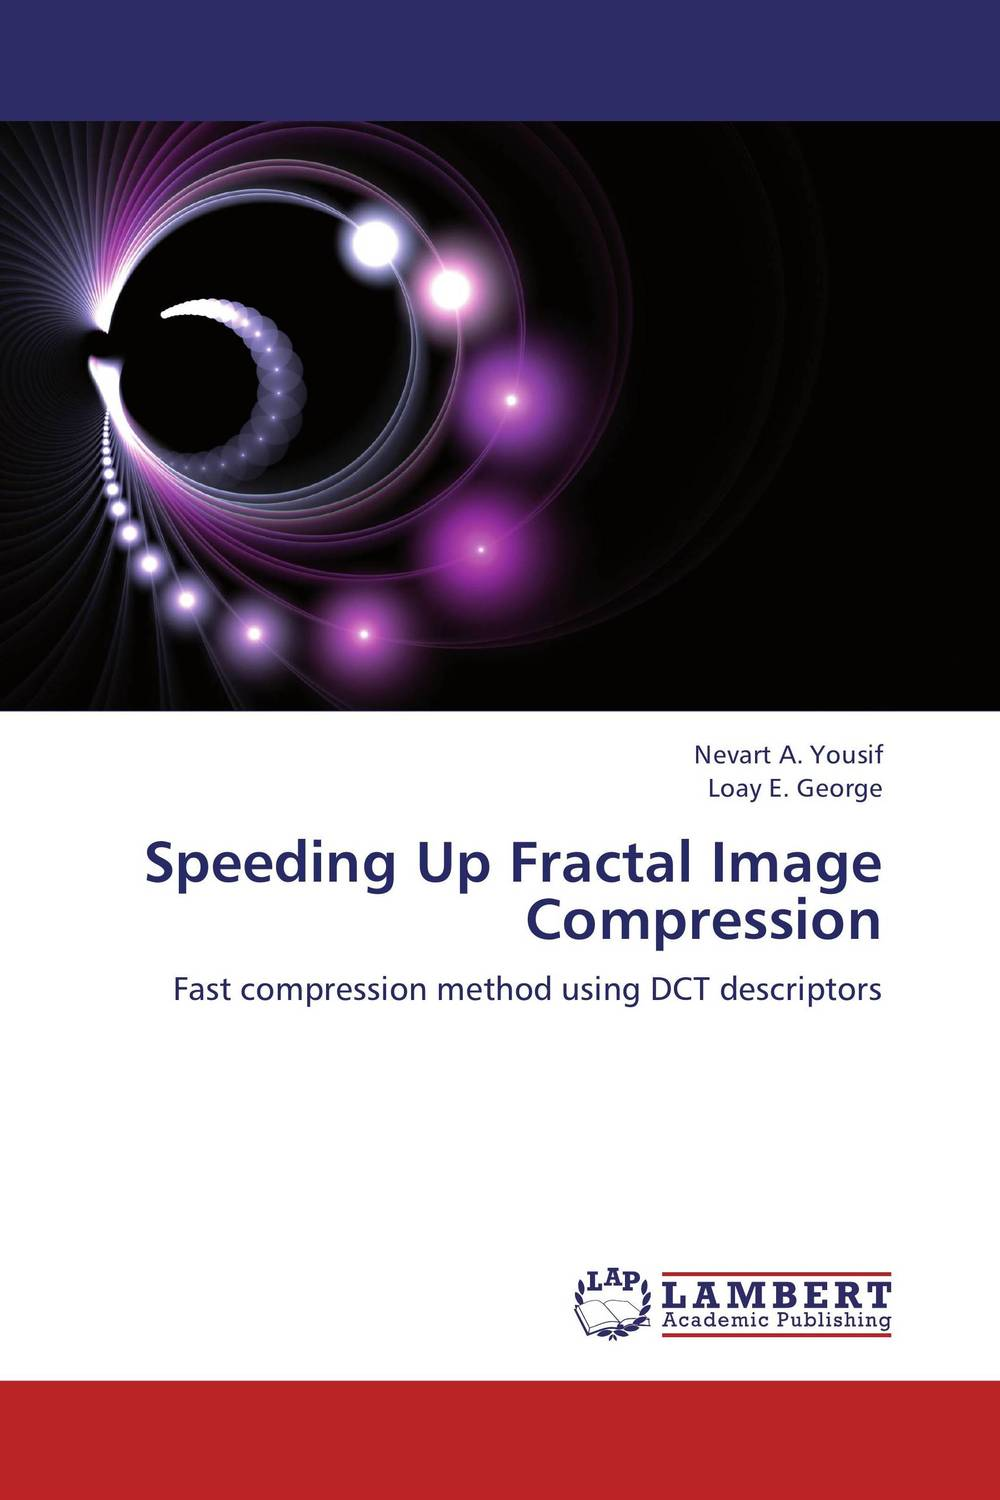 Speeding Up Fractal Image Compression manpreet kaur saini ravinder singh mann and gurpreet singh an efficient lossless medical image compression